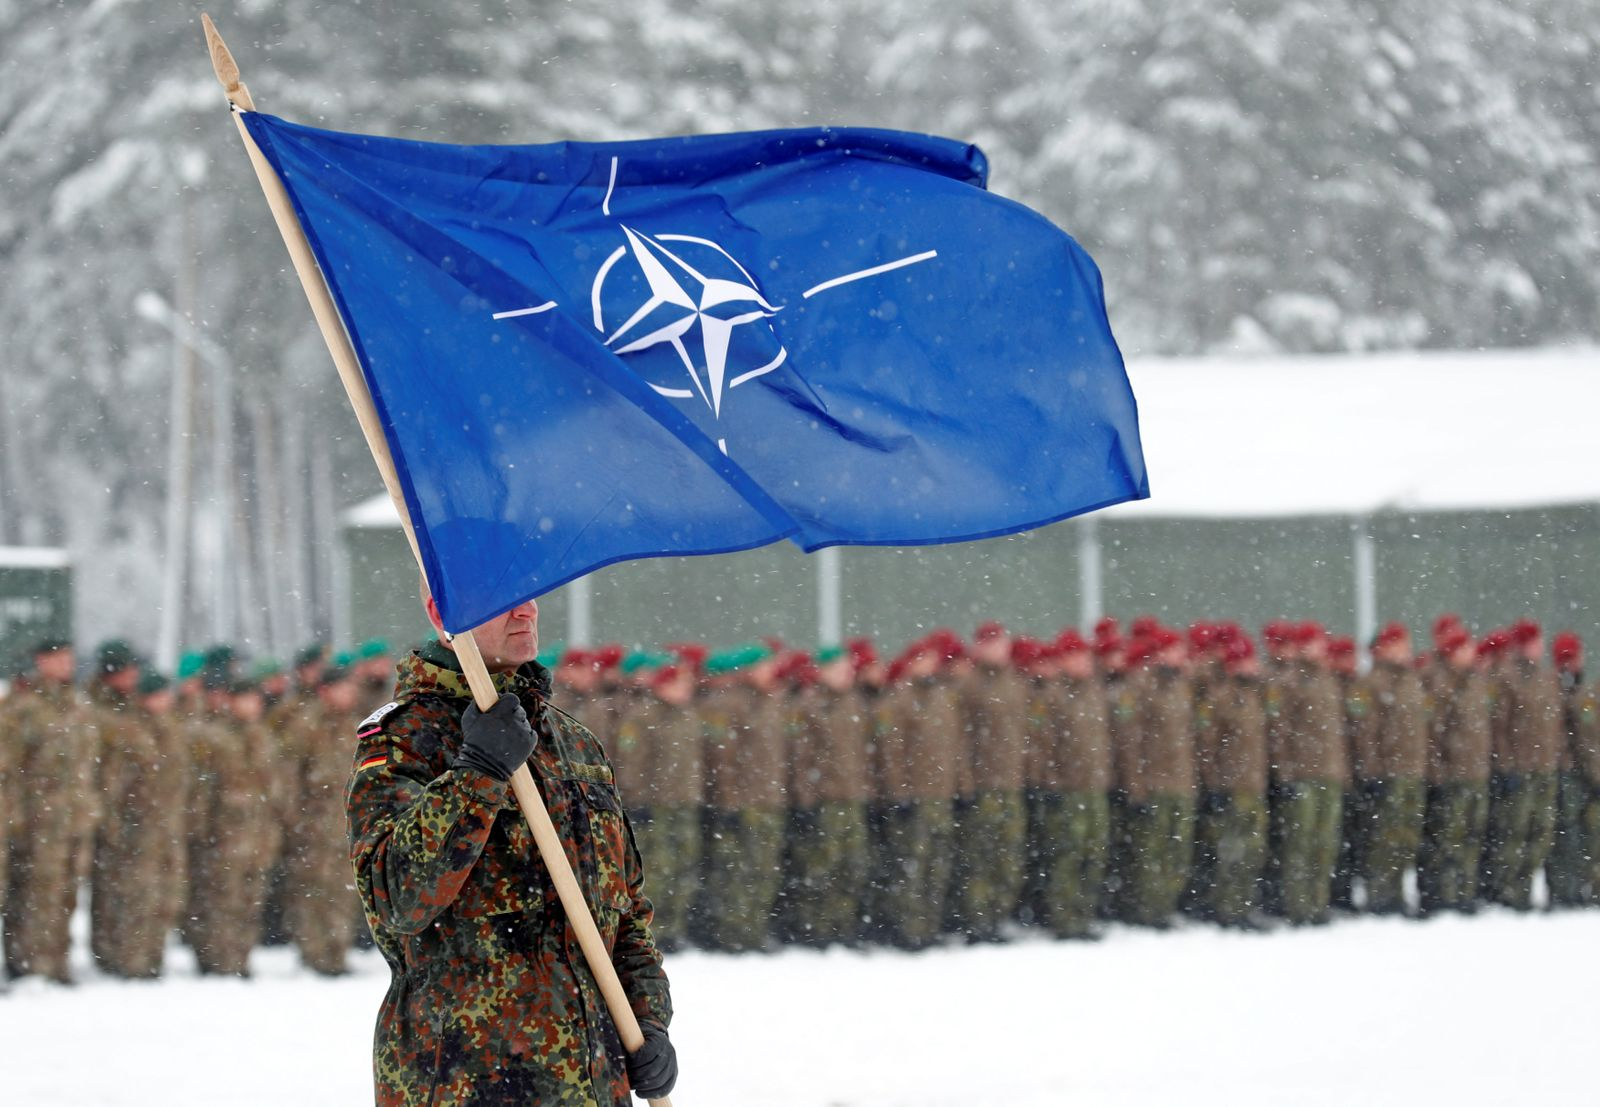 A soldier carries the NATO flag during German Minister of Defence Ursula von der Leyen's visit to German troops deployed as part of NATO enhanced Forward Presence (eFP) battle group in Rukla military base